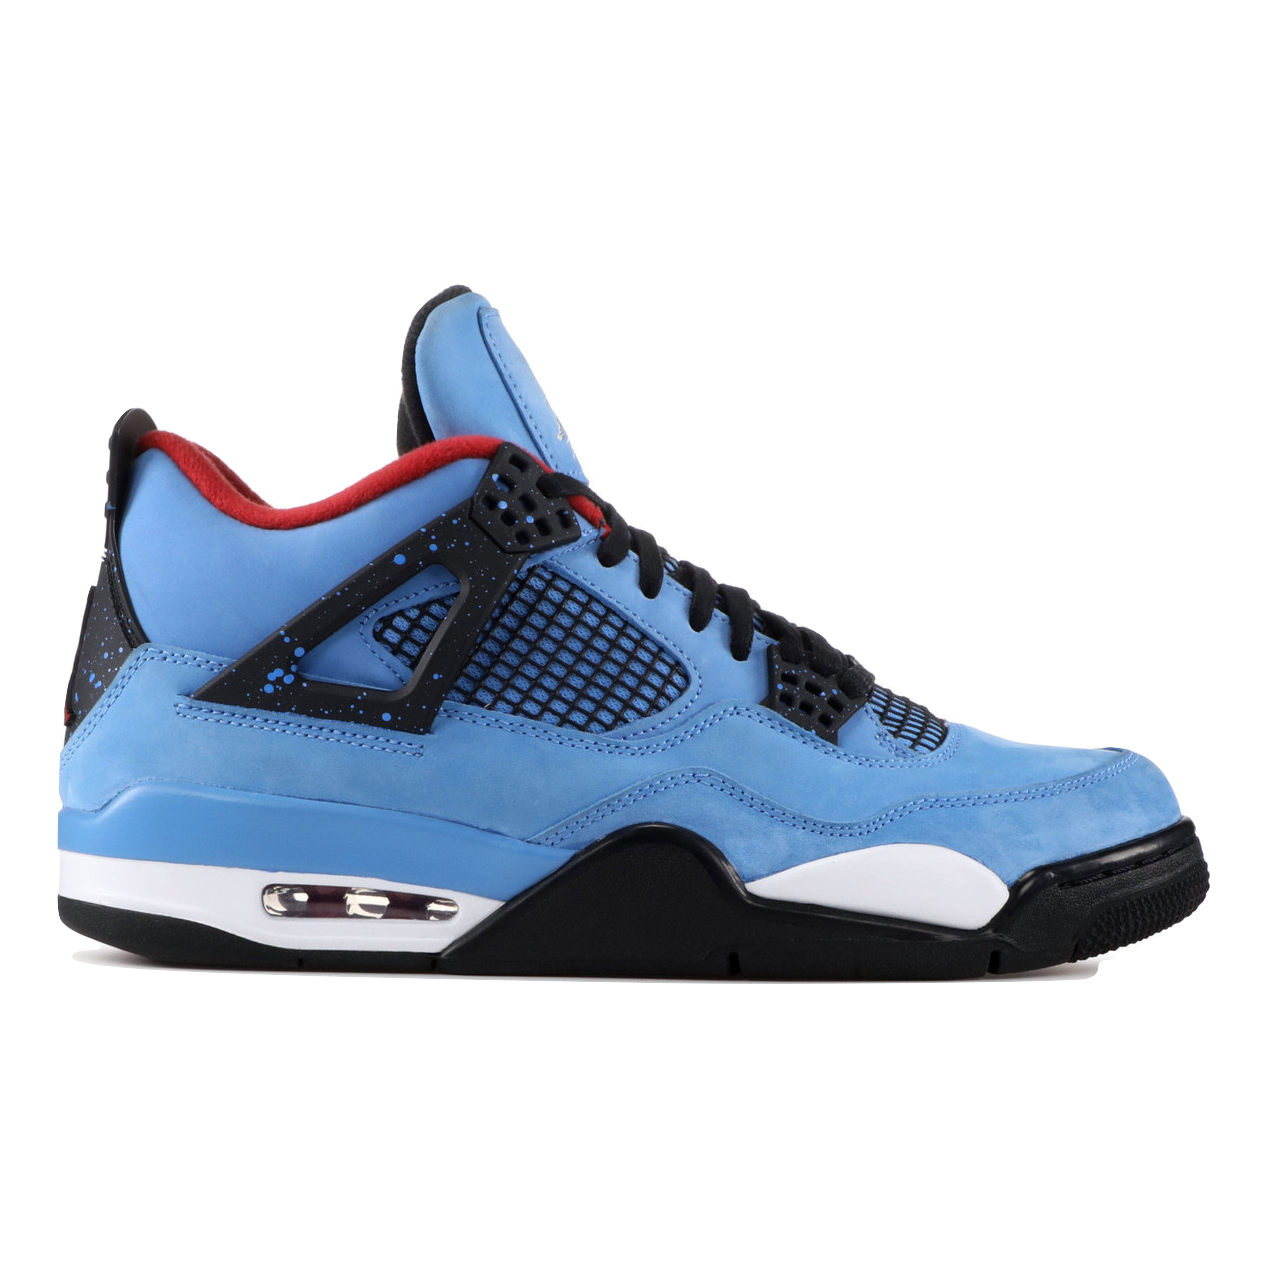 Air Jordan 4 Retro - Cactus Jack/ Travis Scott - Used